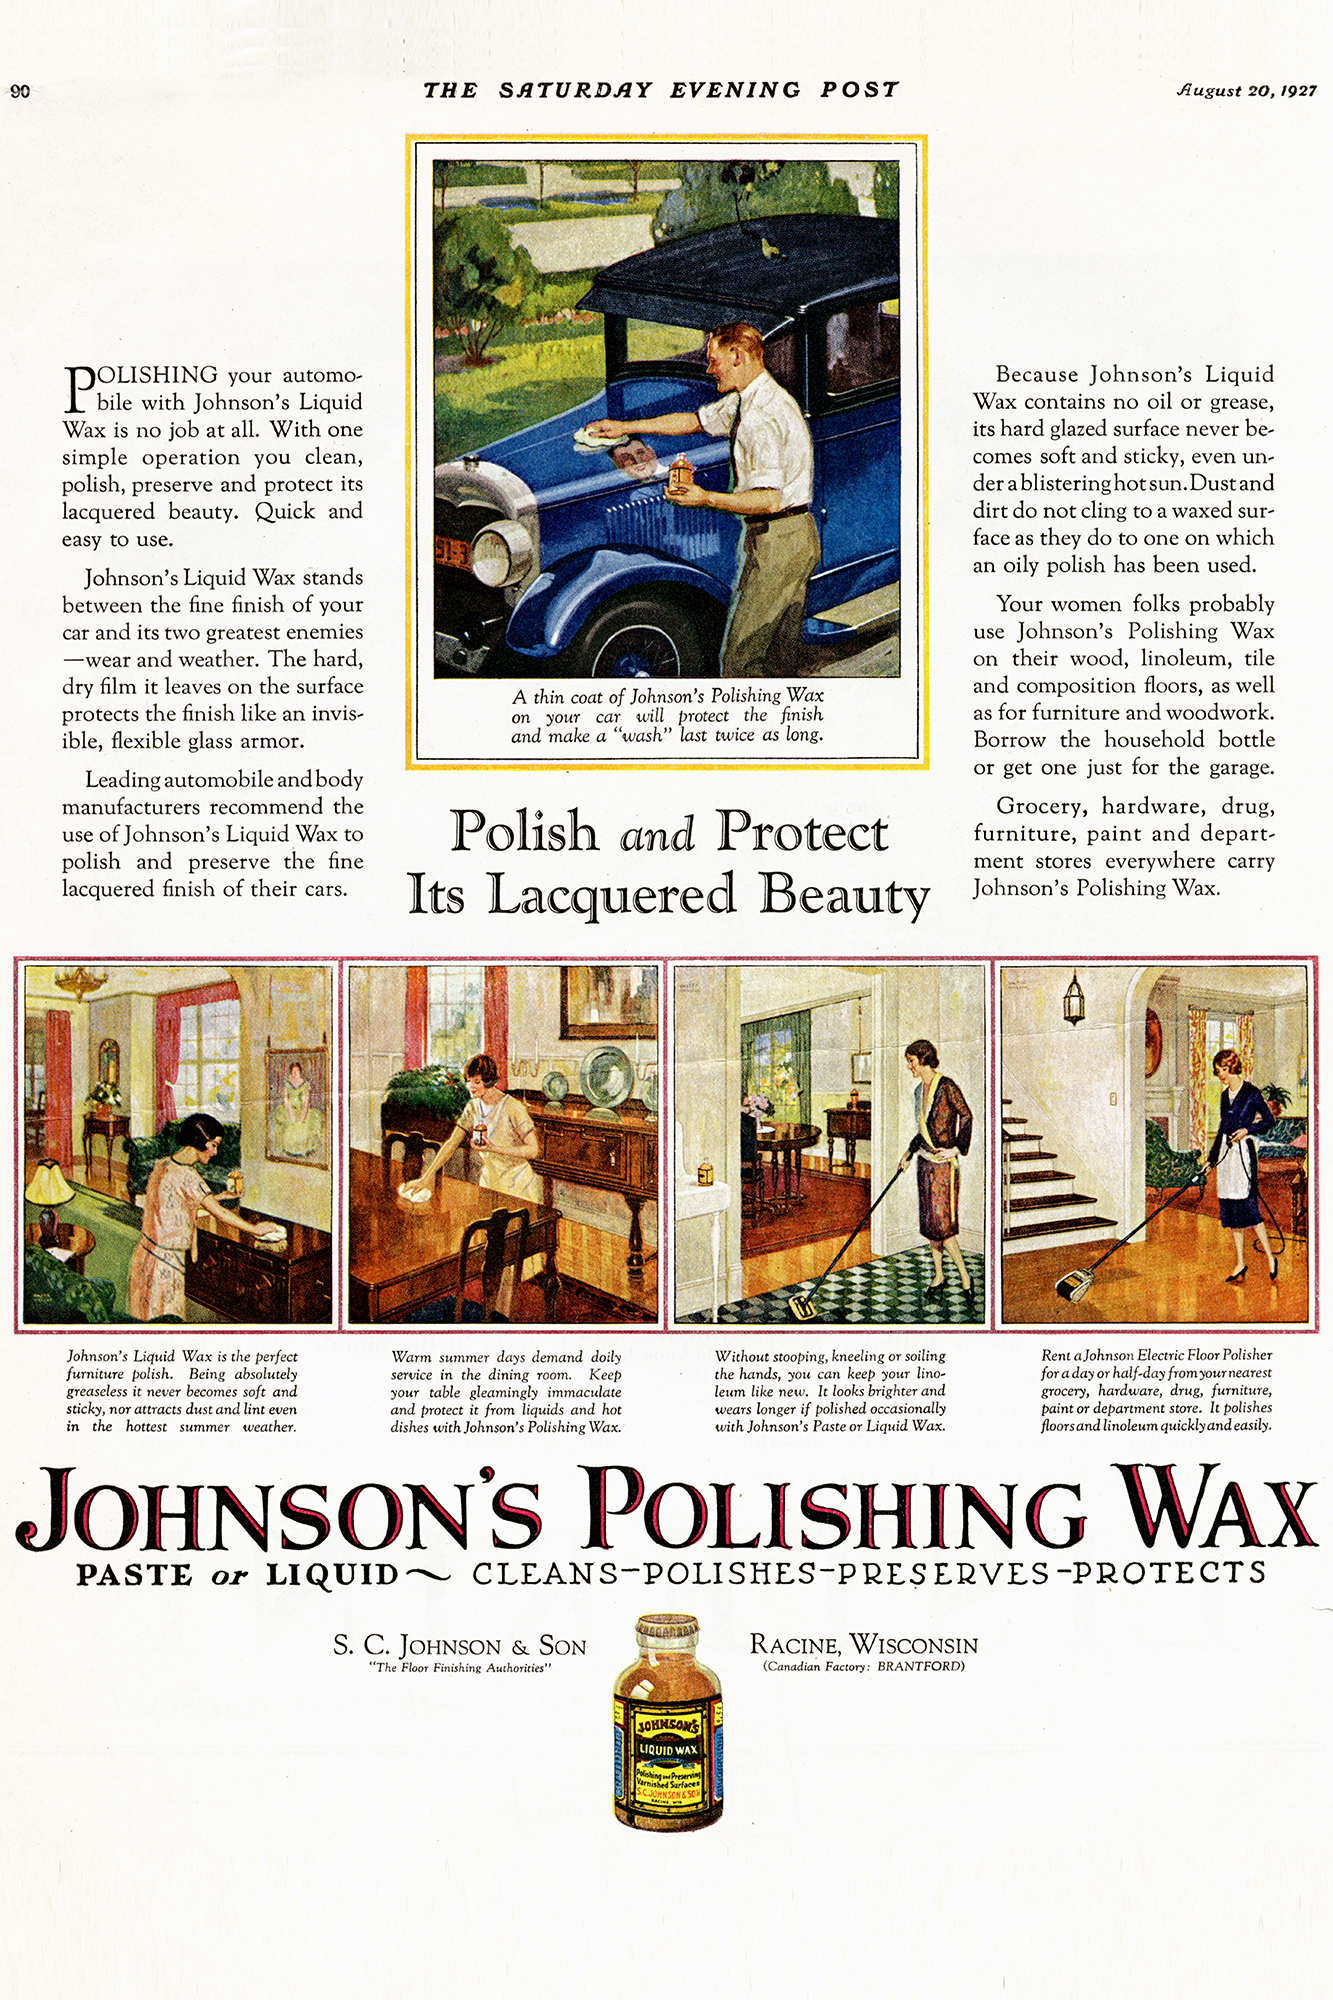 1927 De advertentie voor Johnson's Wax in de Saturday Evening Post